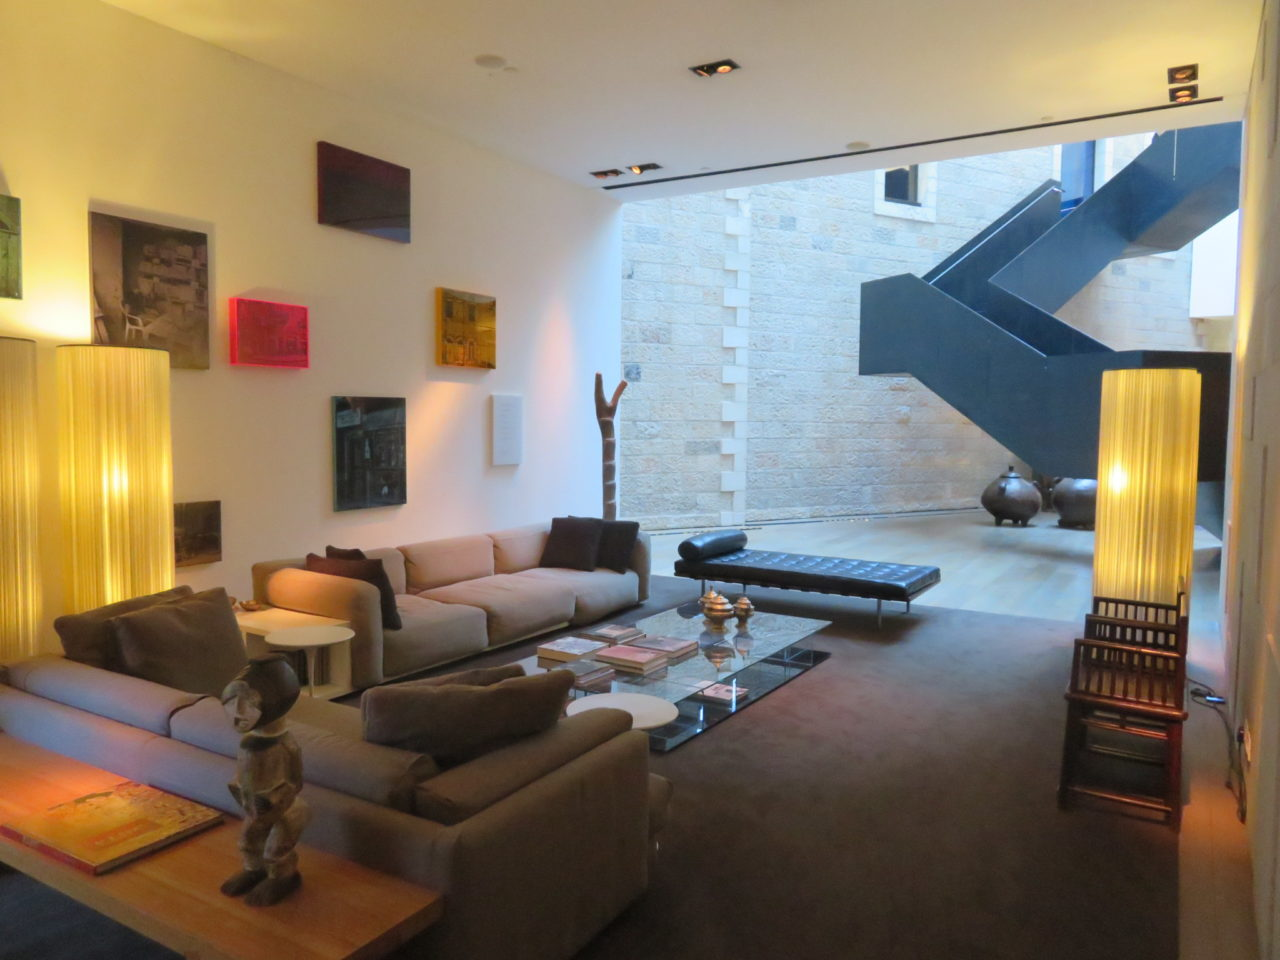 Vacationing in Israel ... The Mamilla Hotel in Jerusalem